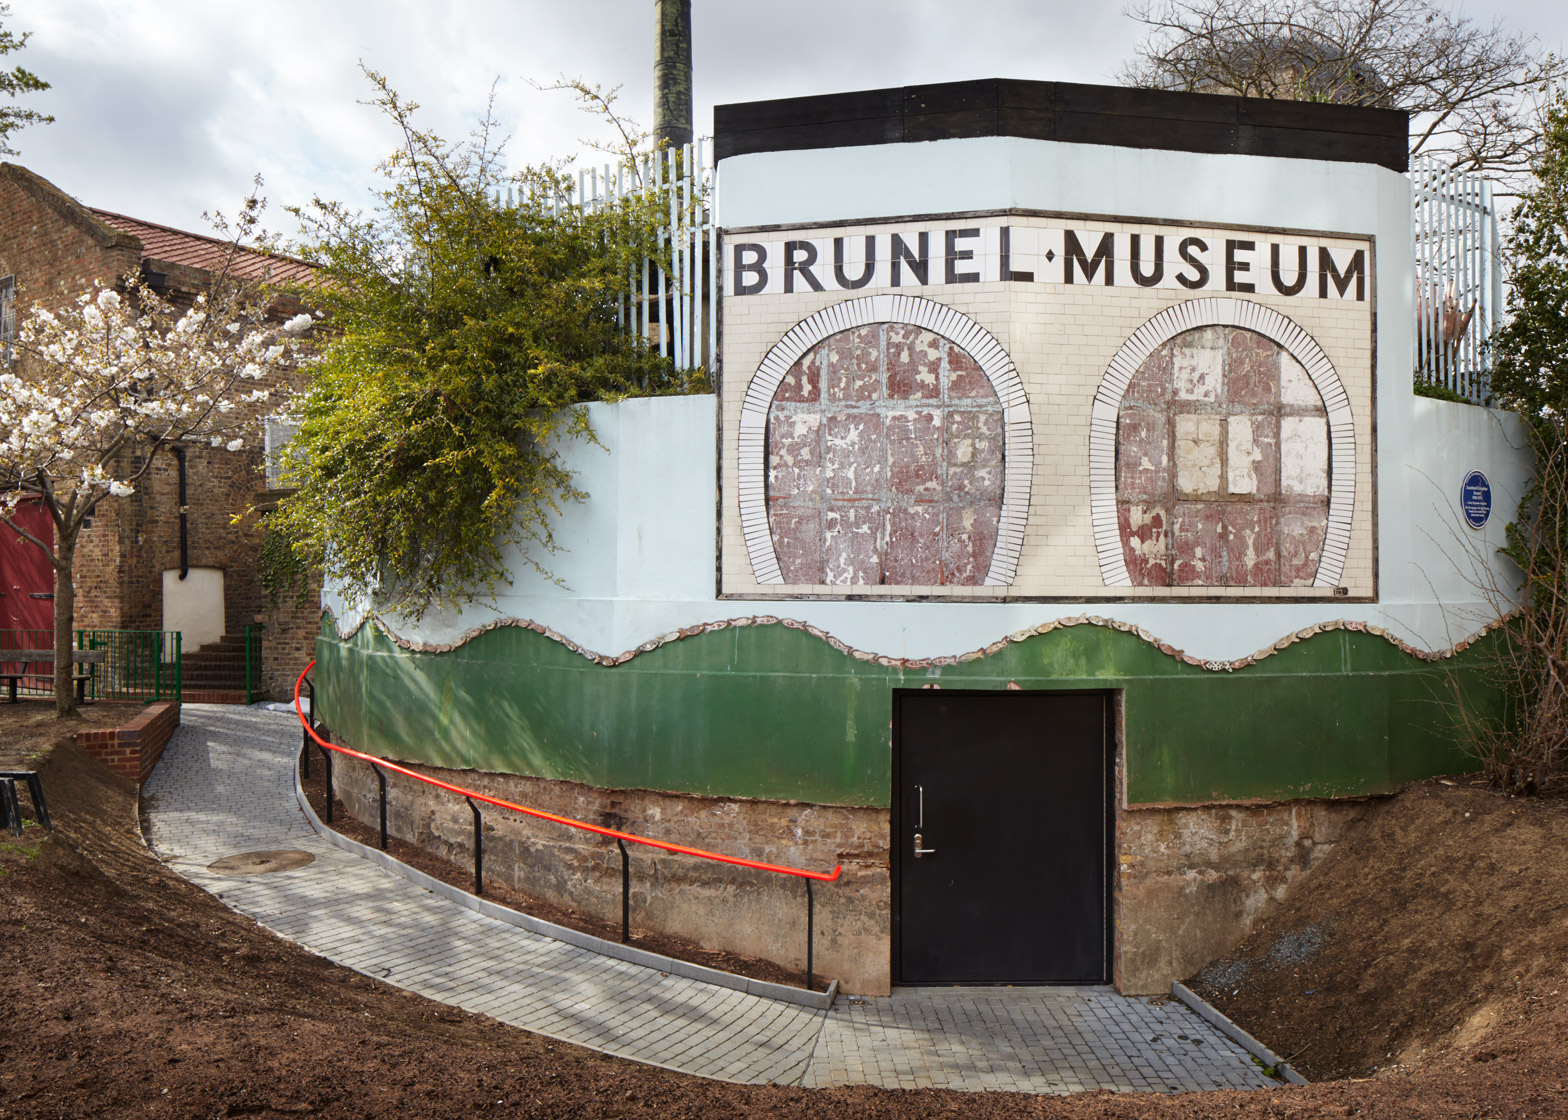 Brunel Museum by Tate Harmer